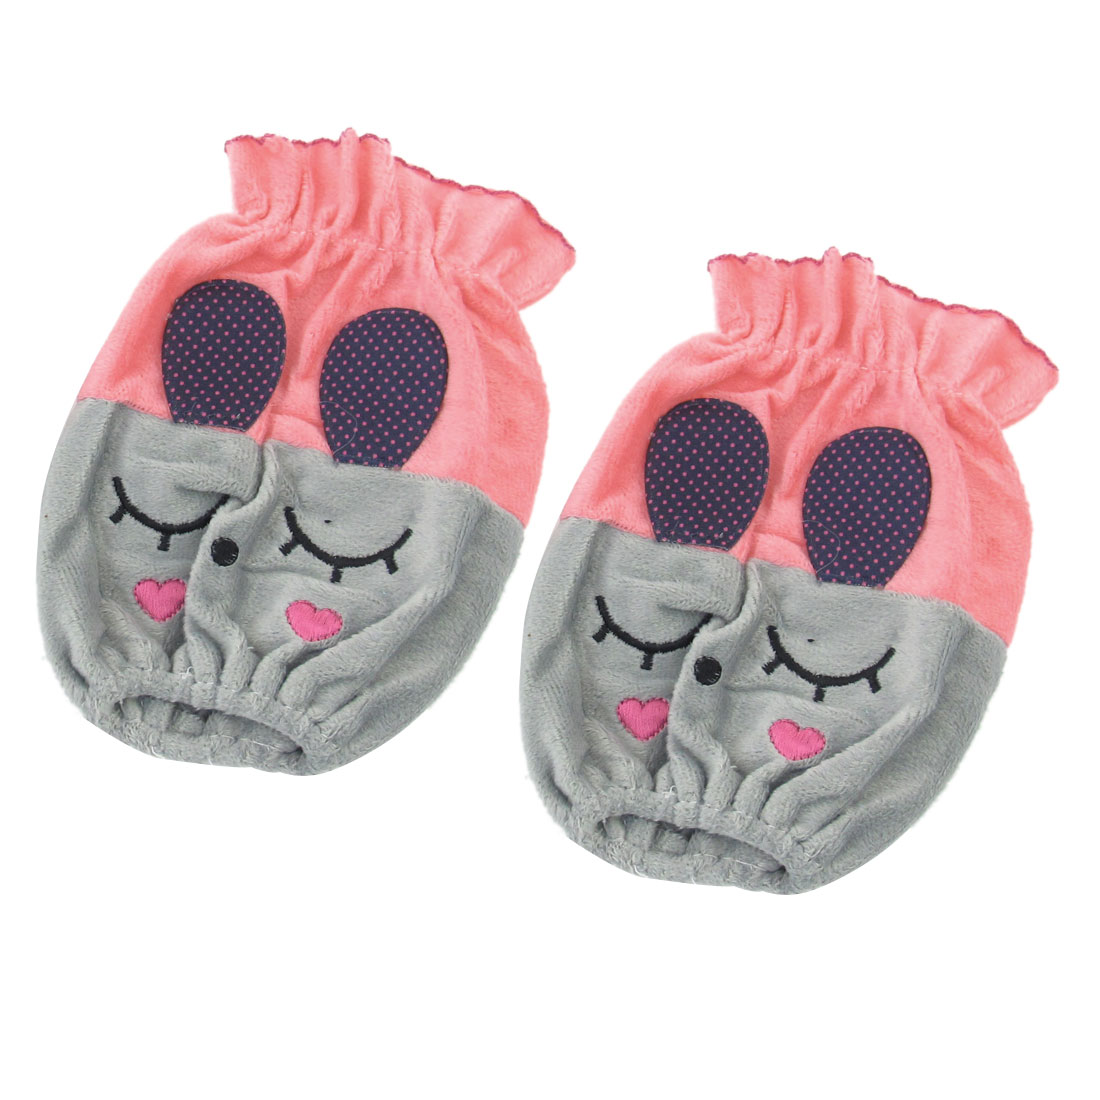 2pcs Child Watermelon Red Gray Rabbit Style Elastic Cuff Arm Sleeve Oversleeve